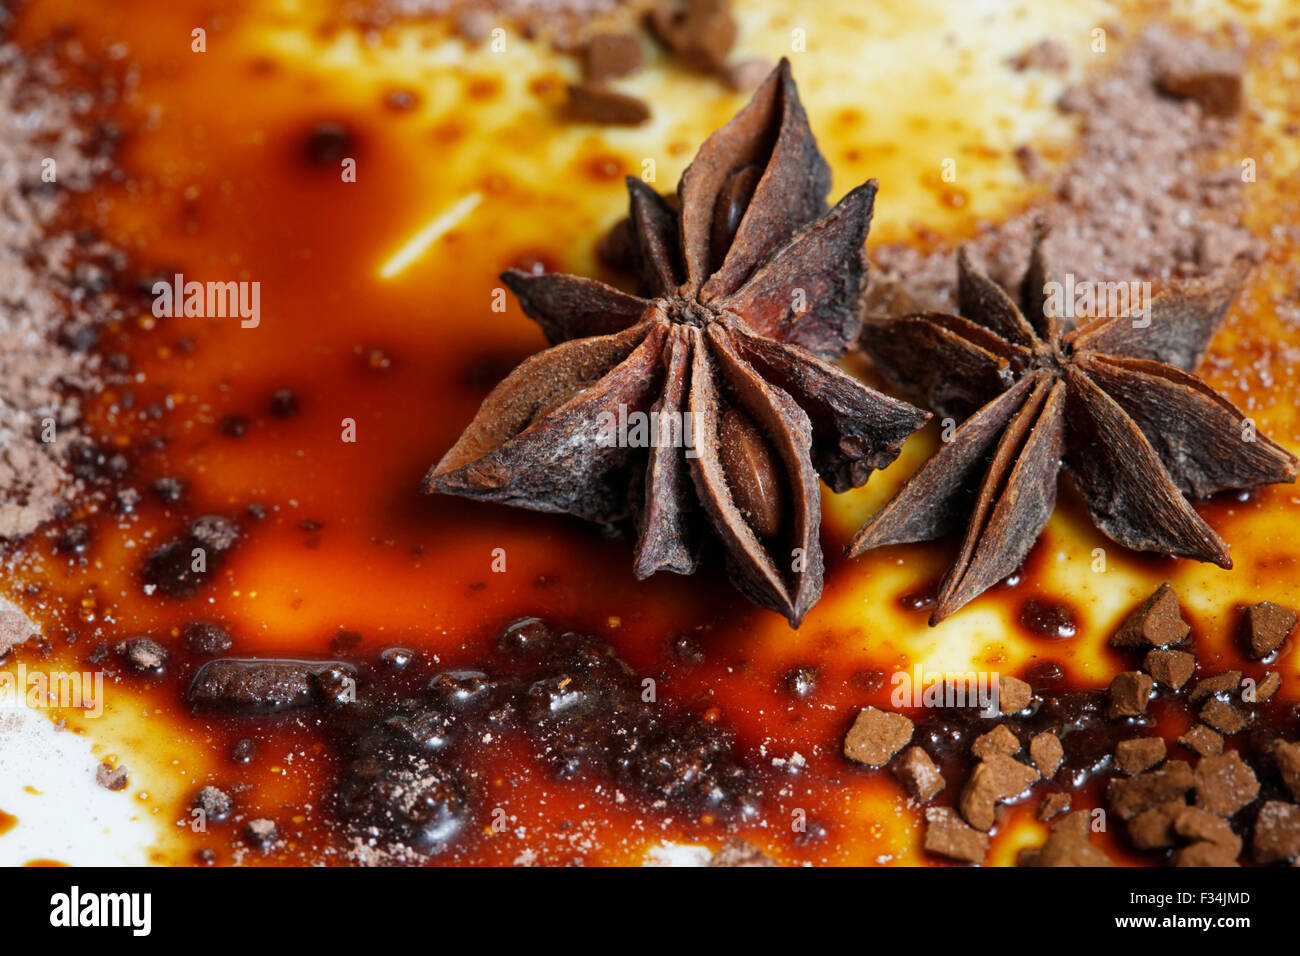 Asterisks anise on a plate with chocolate sauce - Stock Image